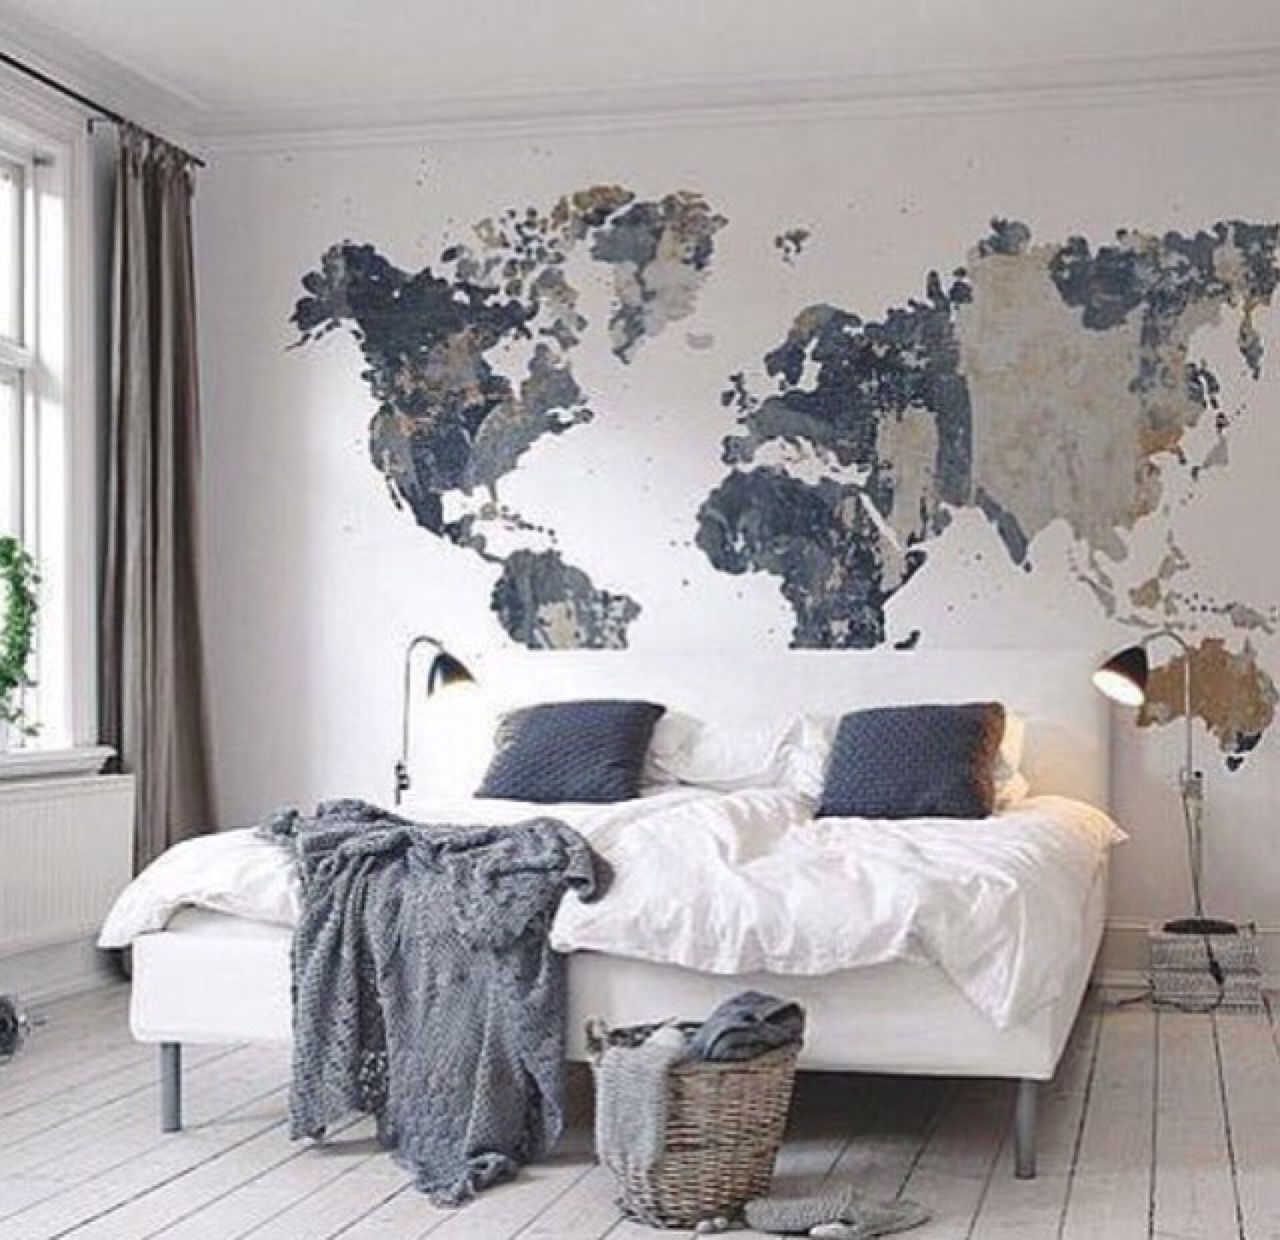 cool map mural See various wall mural designs at http://www.inkshuffle